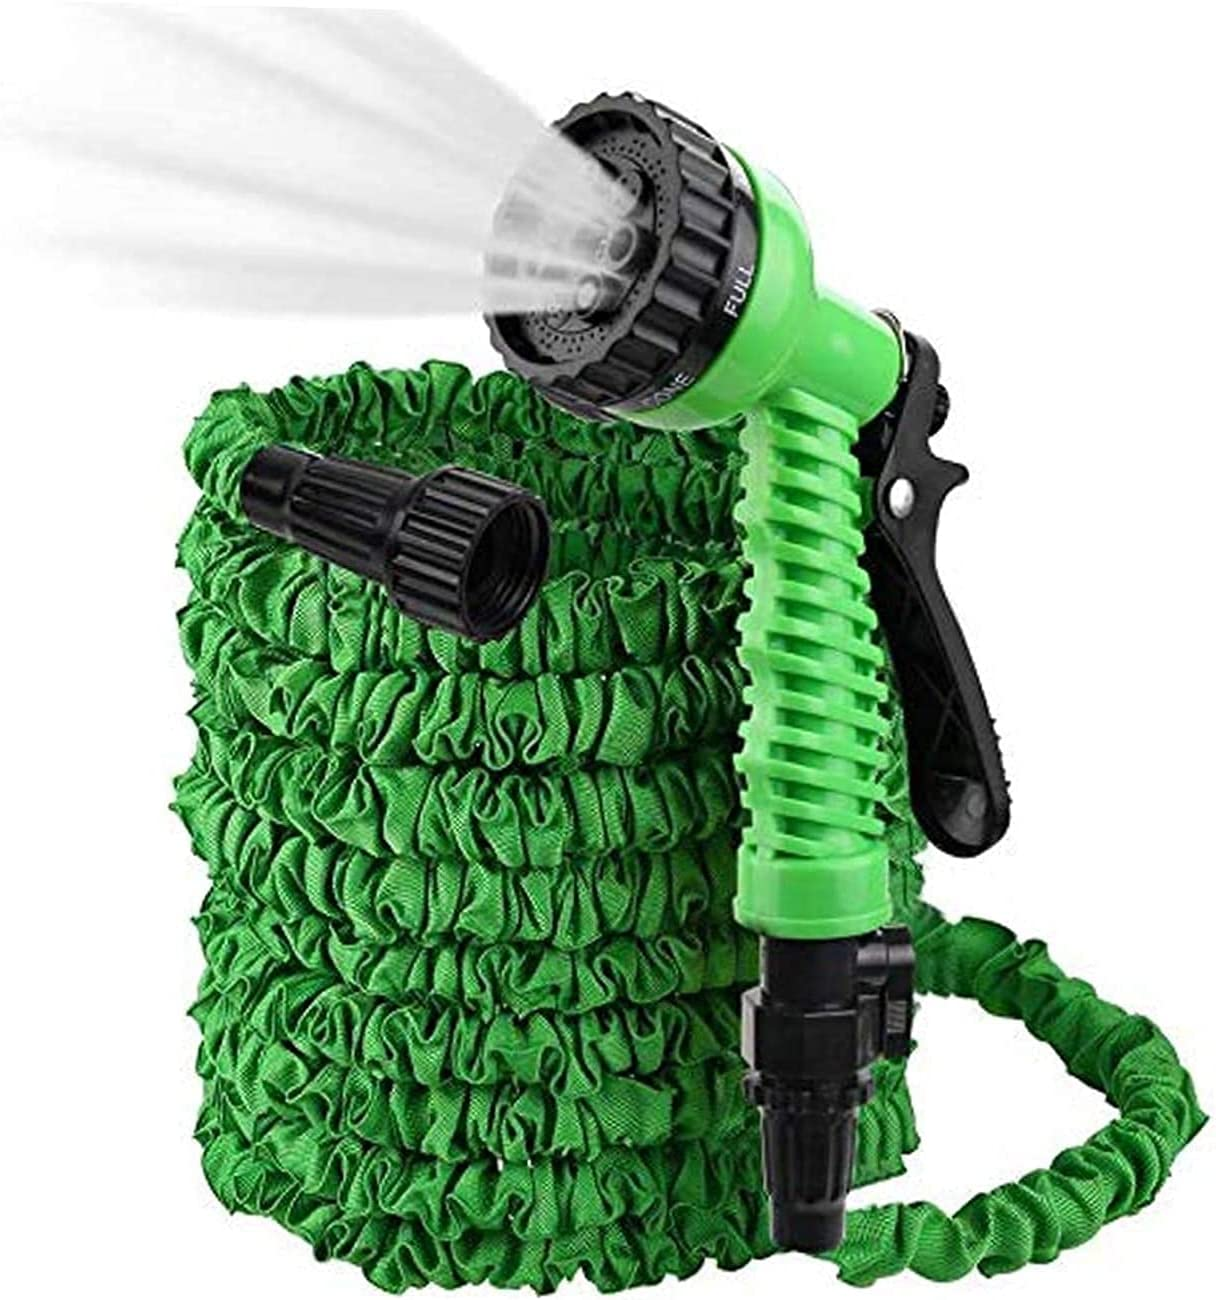 Flexible and Expandable Garden Hose - Strongest Triple Latex Core Free 7 Function Spray Nozzle, Easy Storage Kink Free Water Hose (Green, 25 Feet)